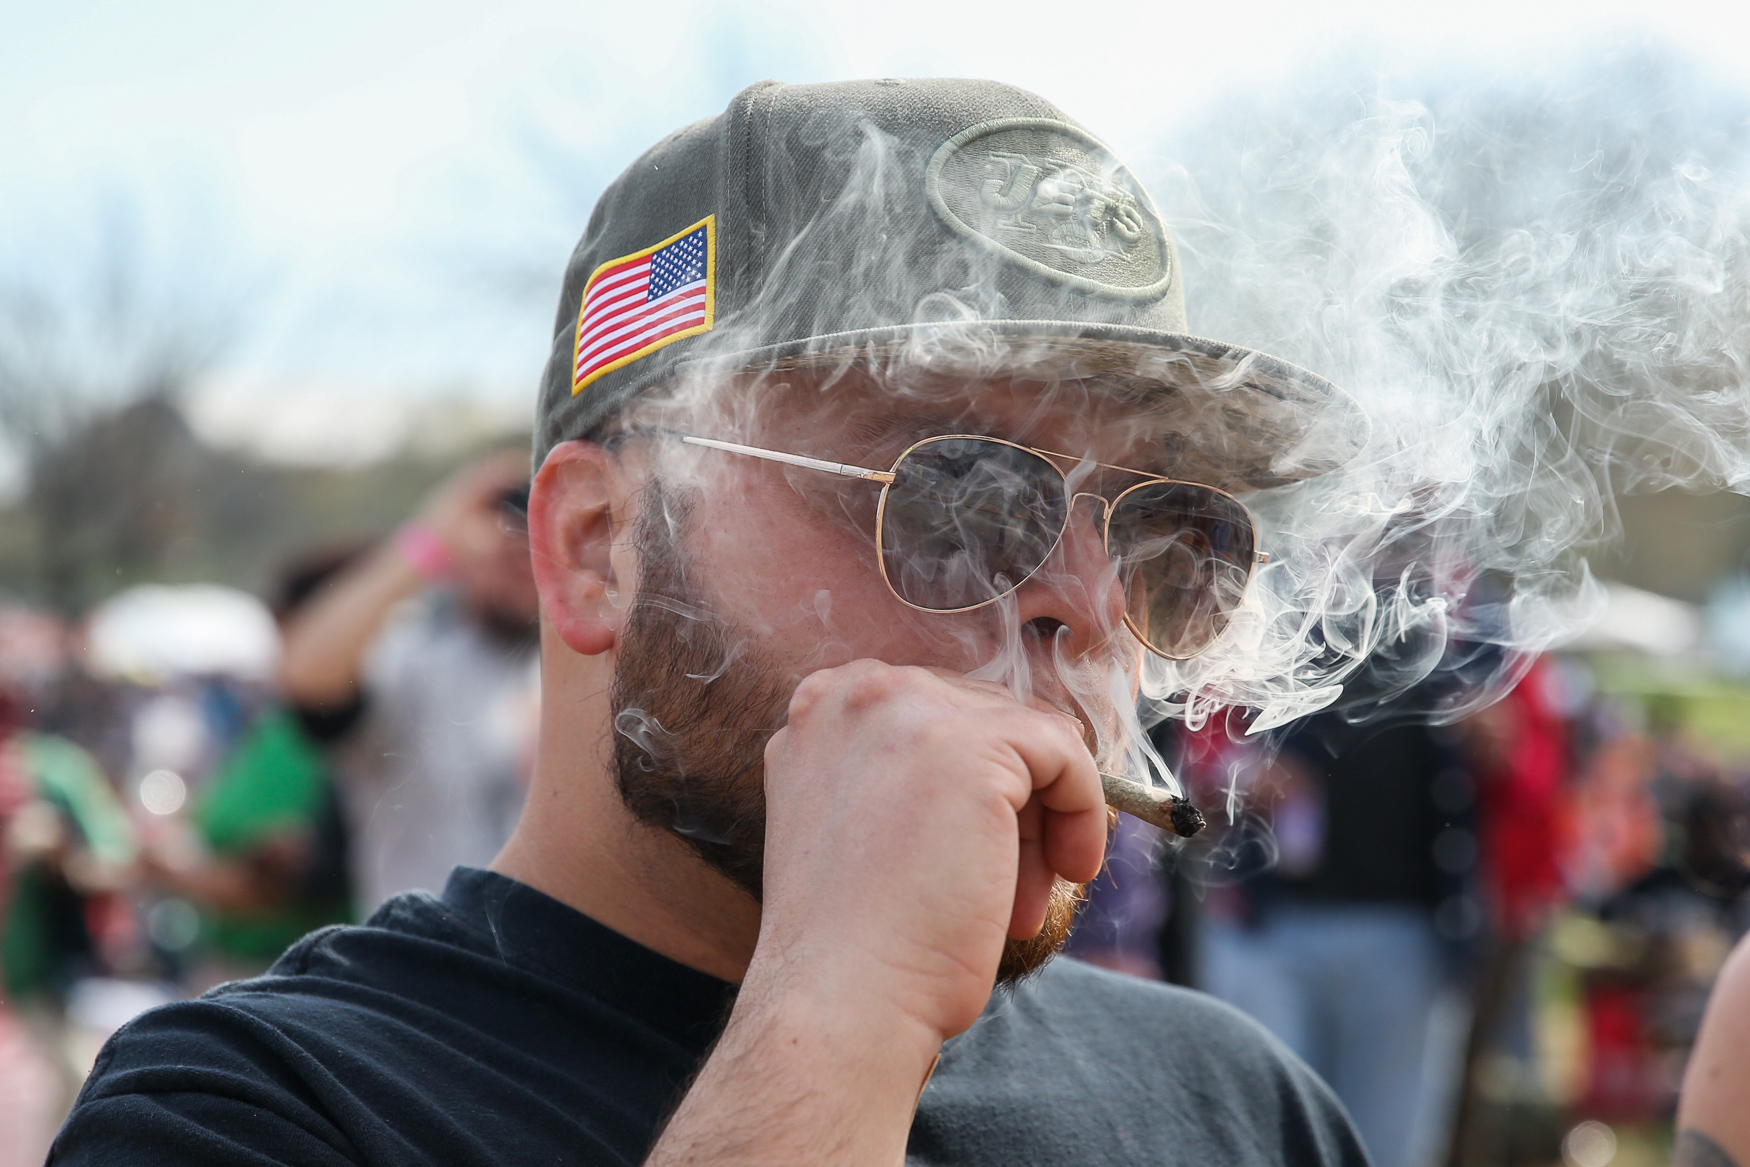 The fourth annual National Cannabis Festival returns to RFK with an all-day concert including performances by Ludacris, Action Bronson, Black Masala, Backyard Band, Farrah Flosscett and more. (Image: Amanda Andrade-Rhoades/ DC Refined)